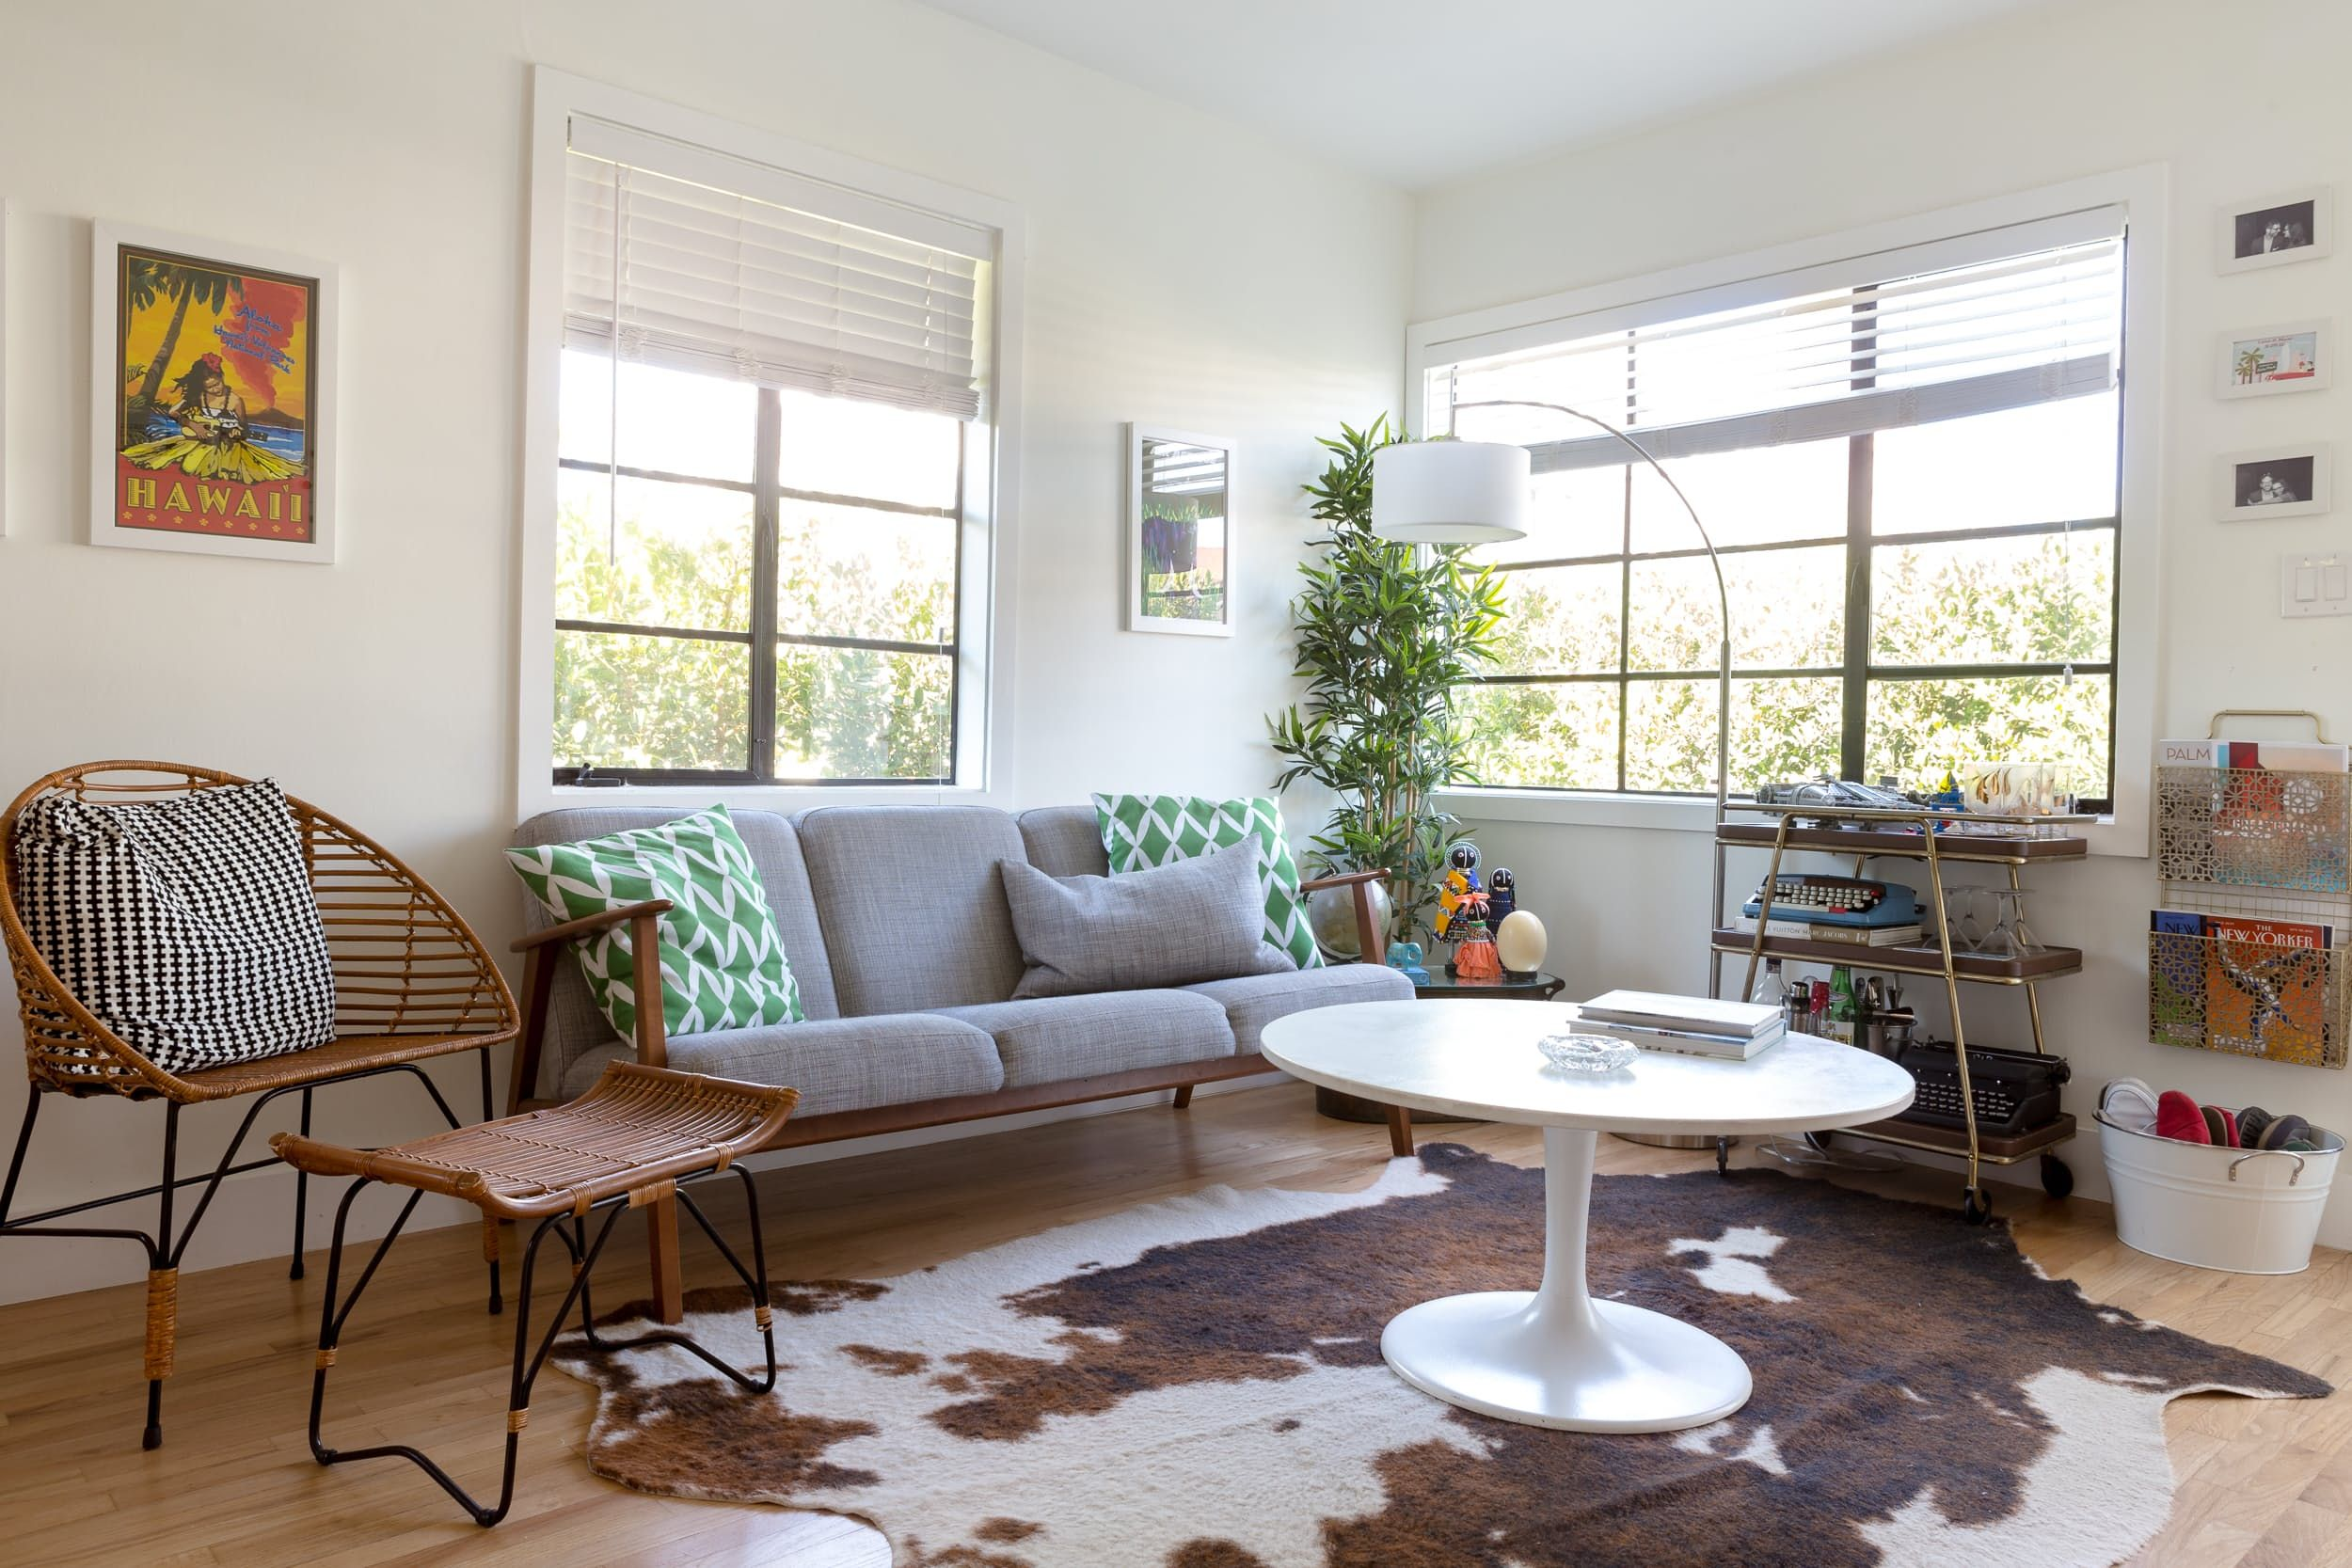 Marni says they've been slowly transforming their retro style into retro-meets-Hemingway. The sofa was found at IKEA and the side chair and ottoman set was found at Target. The vintage travel posters are from Etsy.